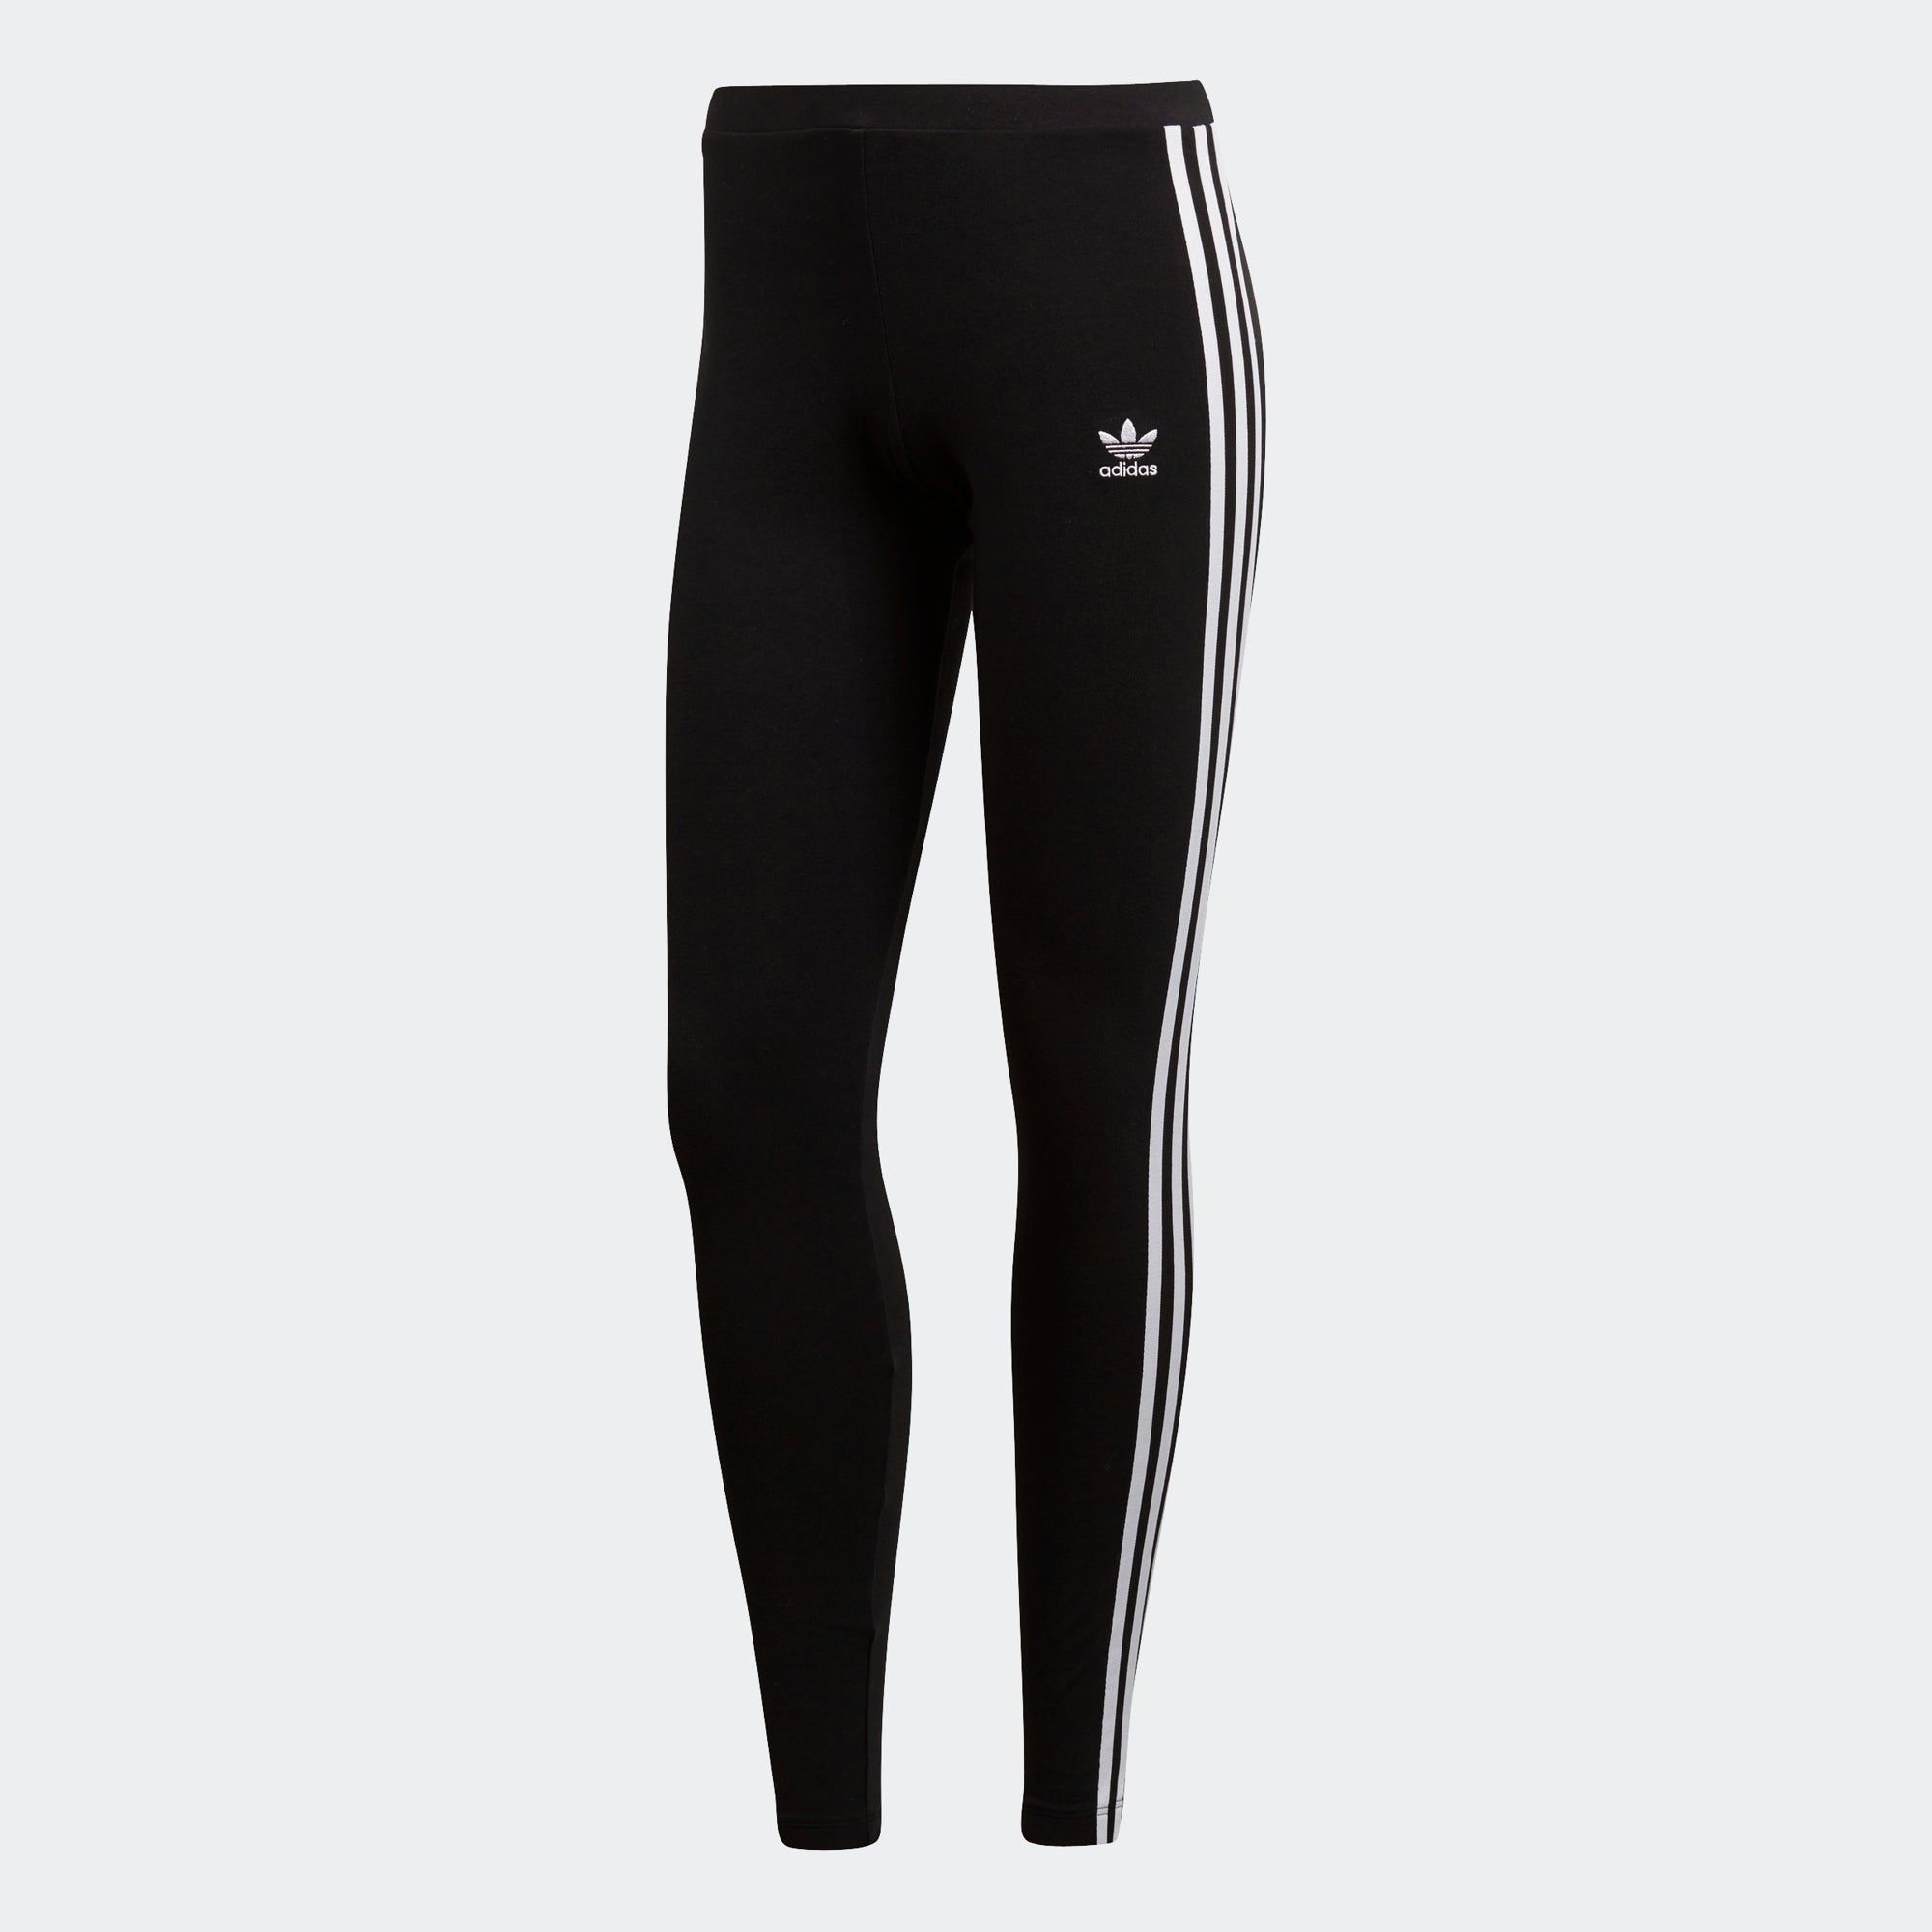 68e76ad0cf5b Women s adidas Originals 3-Stripes Leggings Black  White